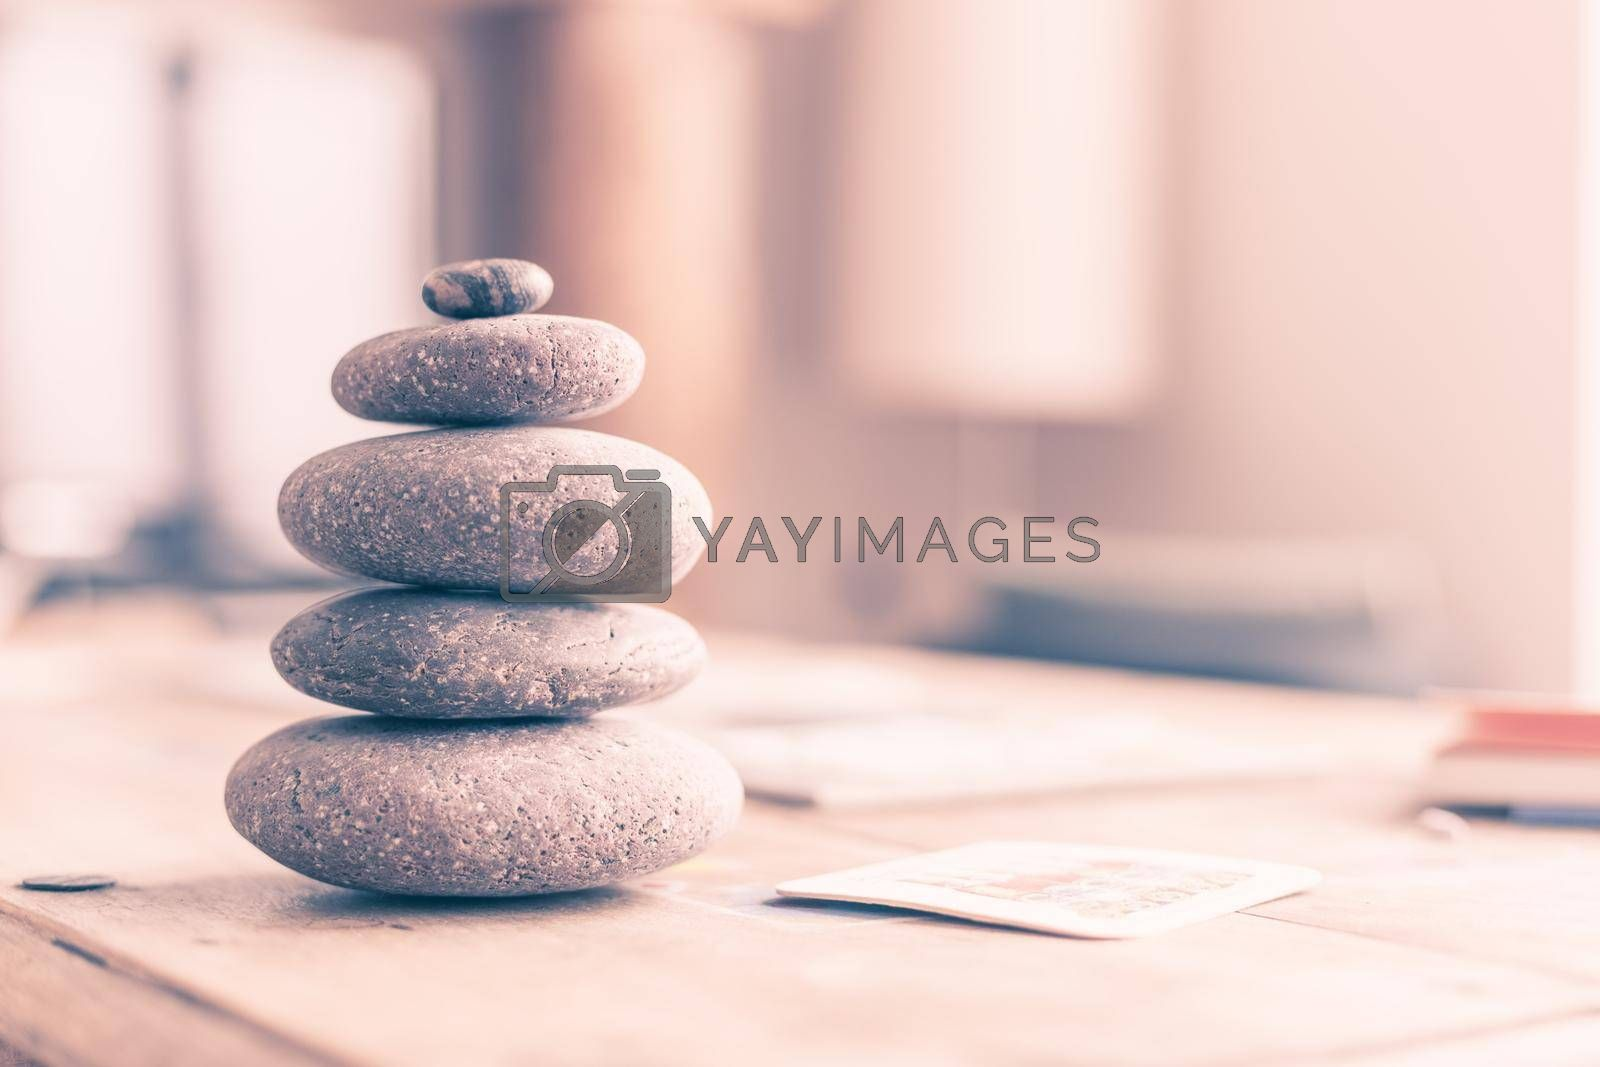 Feng Shui: Stone cairn in the foreground, blurry living room in the background. Balance and relaxation.